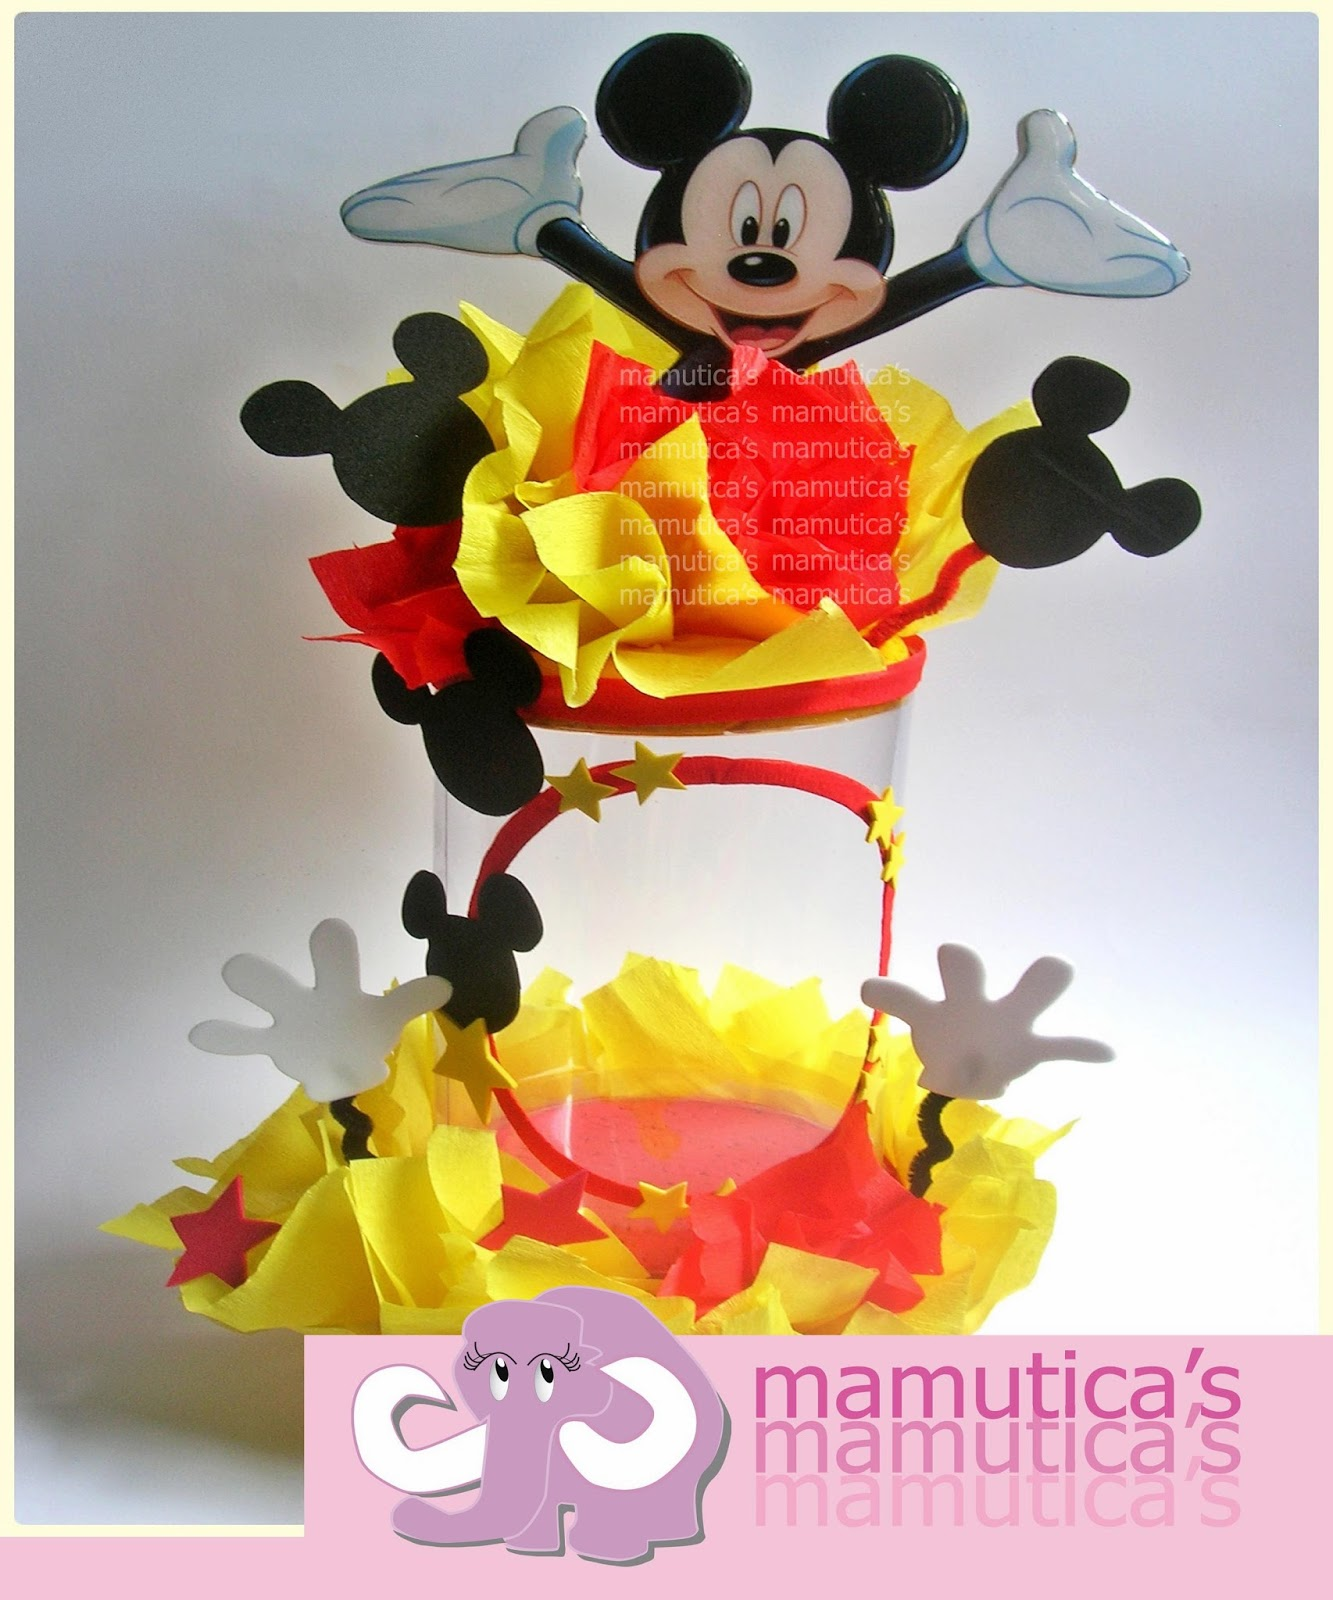 Mamutica's: Dispensadores de chucherías .... Mickey Mouse